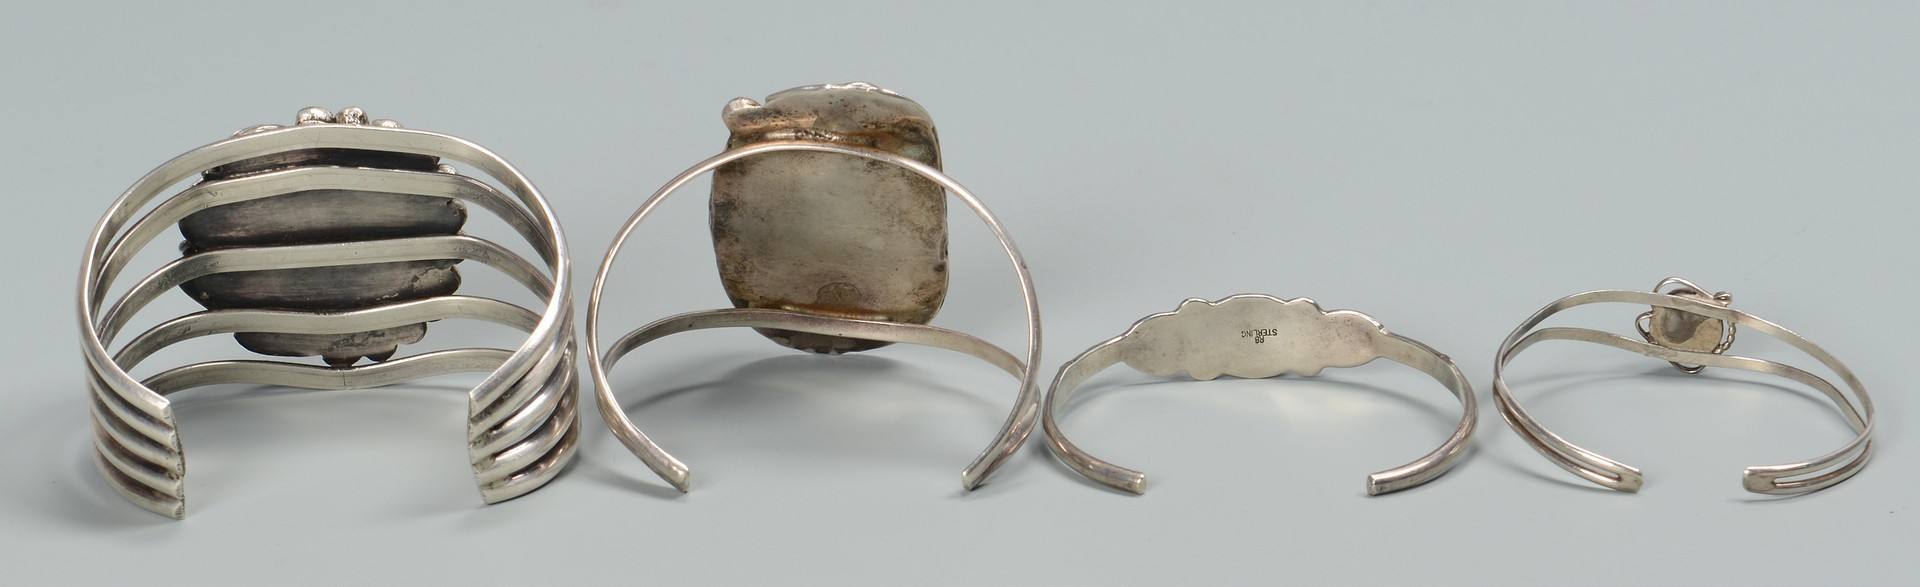 Lot 782: Grouping of Navajo Jewelry & Sterling Silver